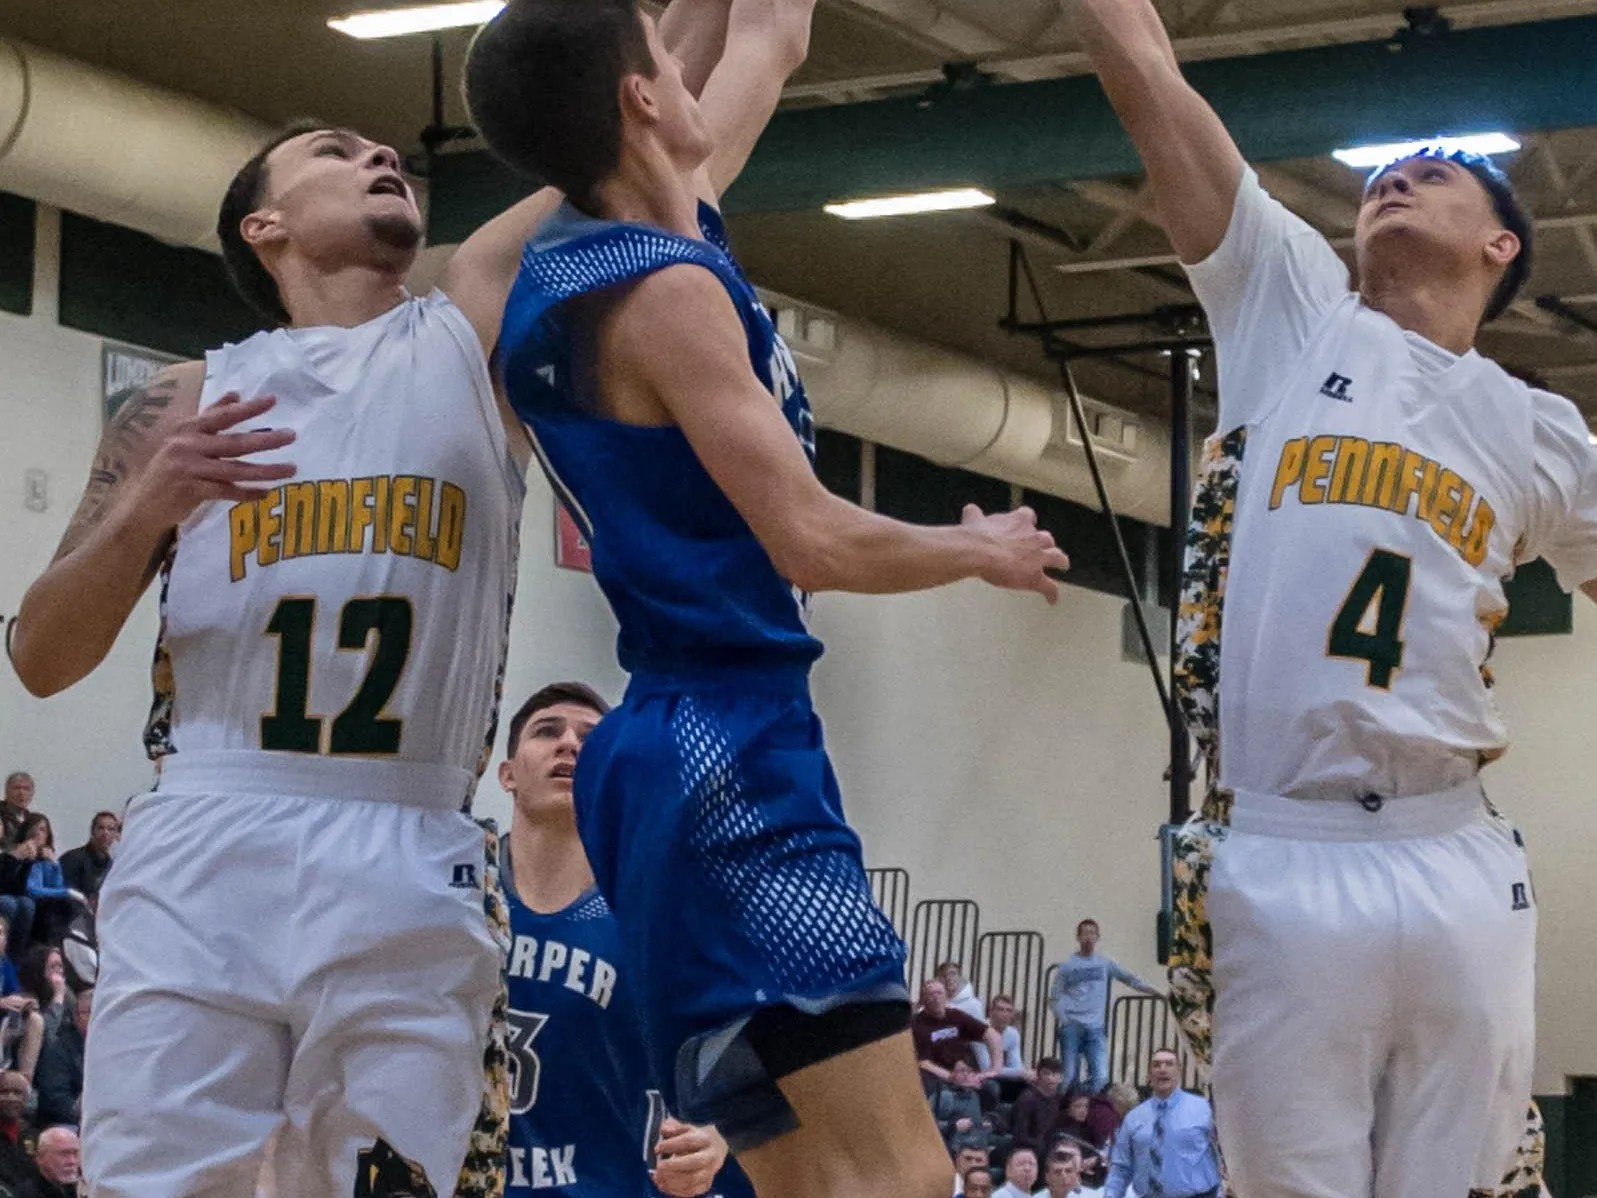 Pennfield's Steffen Kinne (12) and Deveaire Todd (4) go for the ...